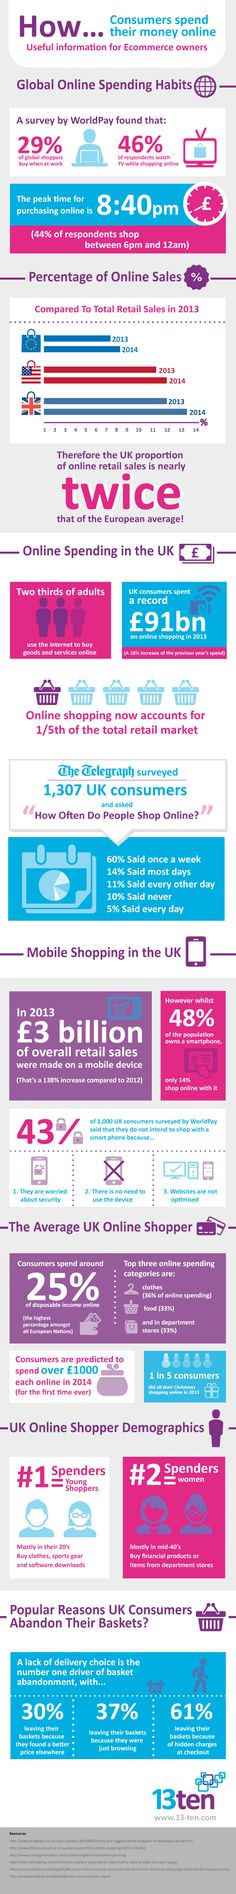 How consumers spend their money online